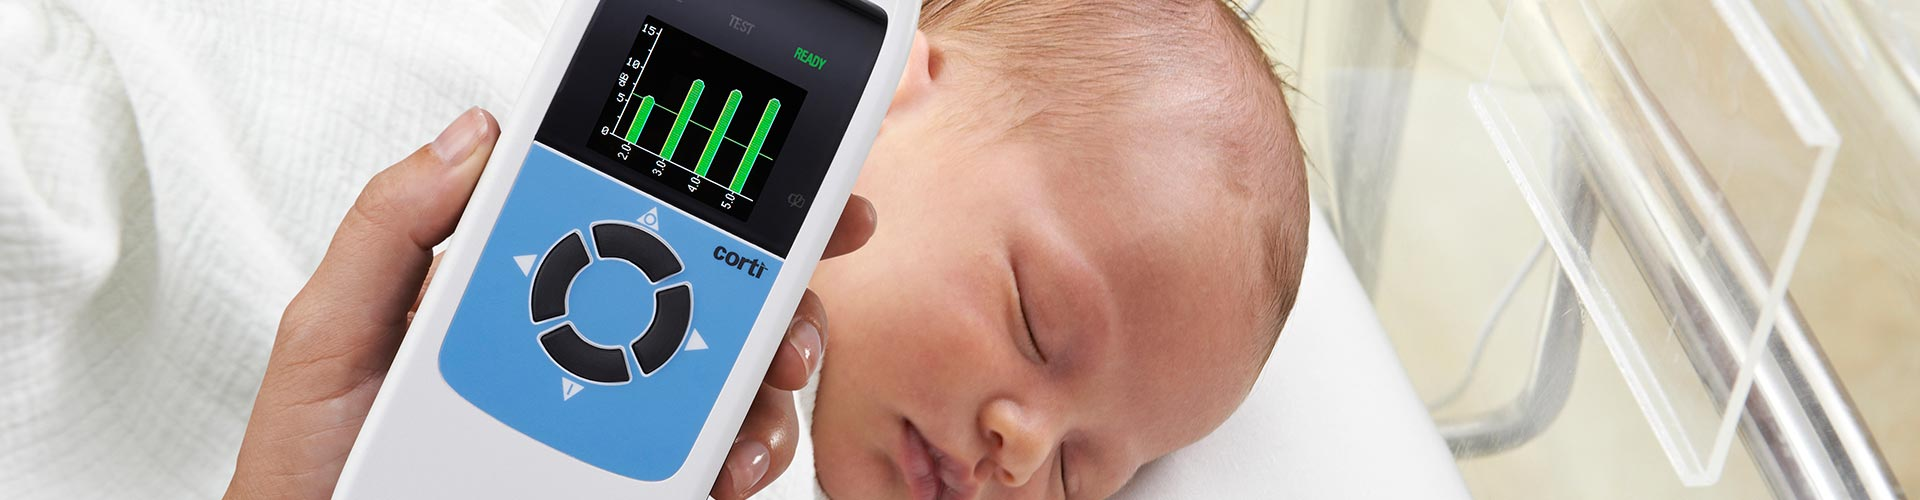 An infant being evaluated for otoacoustic emissions with the GSI Corti